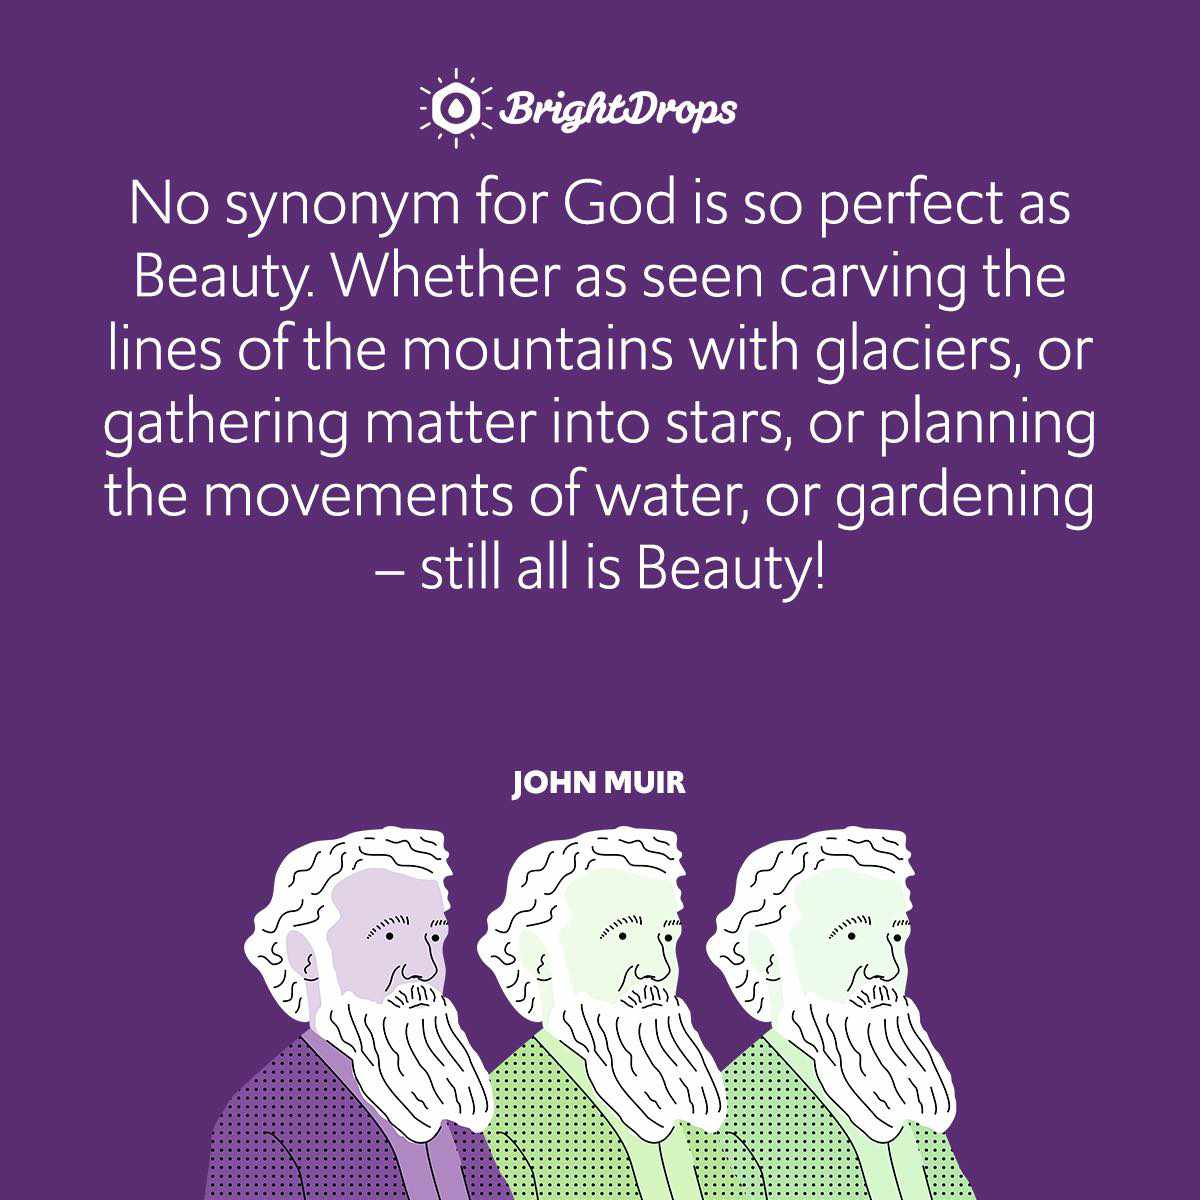 No synonym for God is so perfect as Beauty. Whether as seen carving the lines of the mountains with glaciers, or gathering matter into stars, or planning the movements of water, or gardening – still all is Beauty!